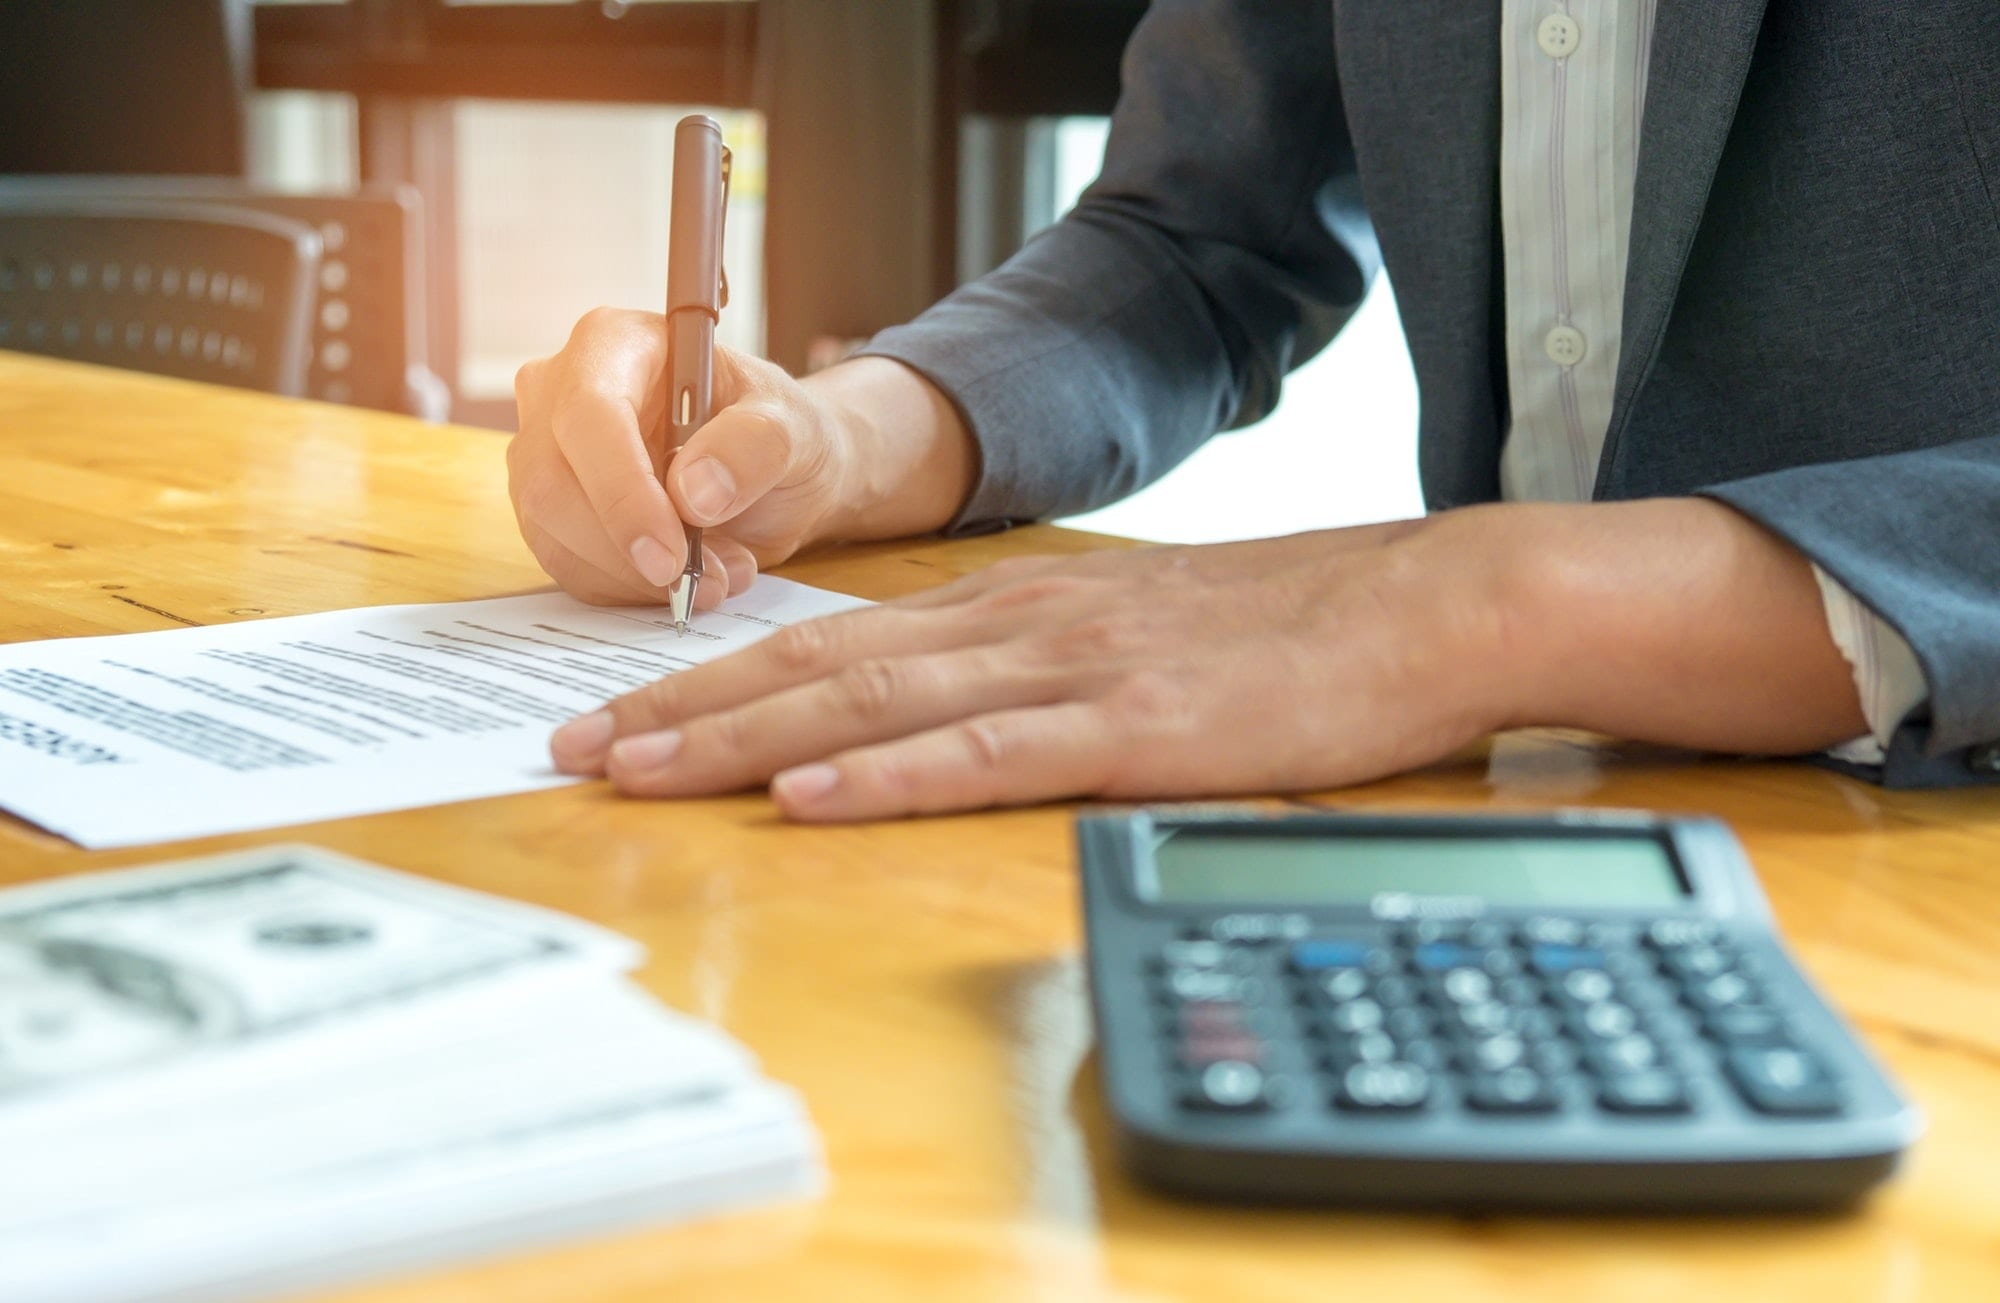 Sign the document when it comes to business deals.